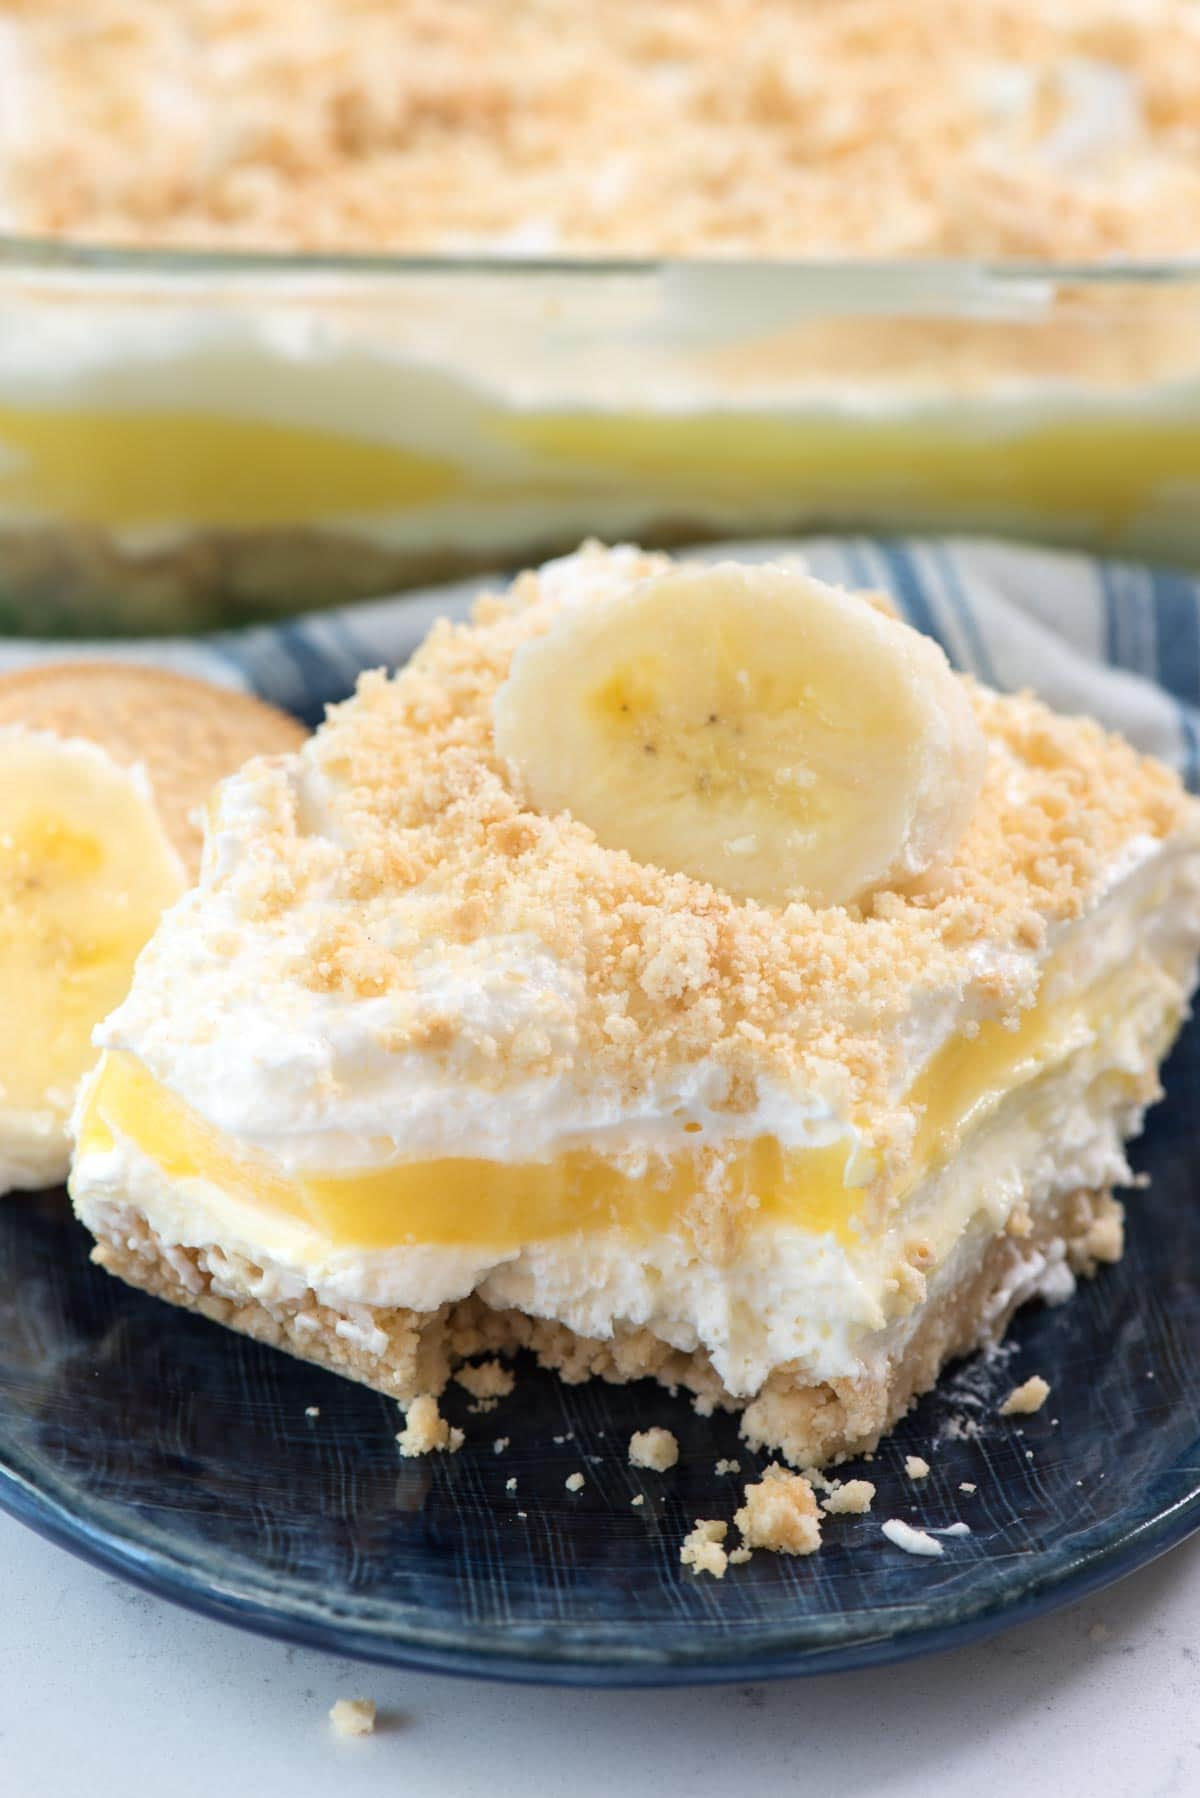 Easy Banana Desserts No Bake  No Bake Banana Pudding Dream Dessert Crazy for Crust